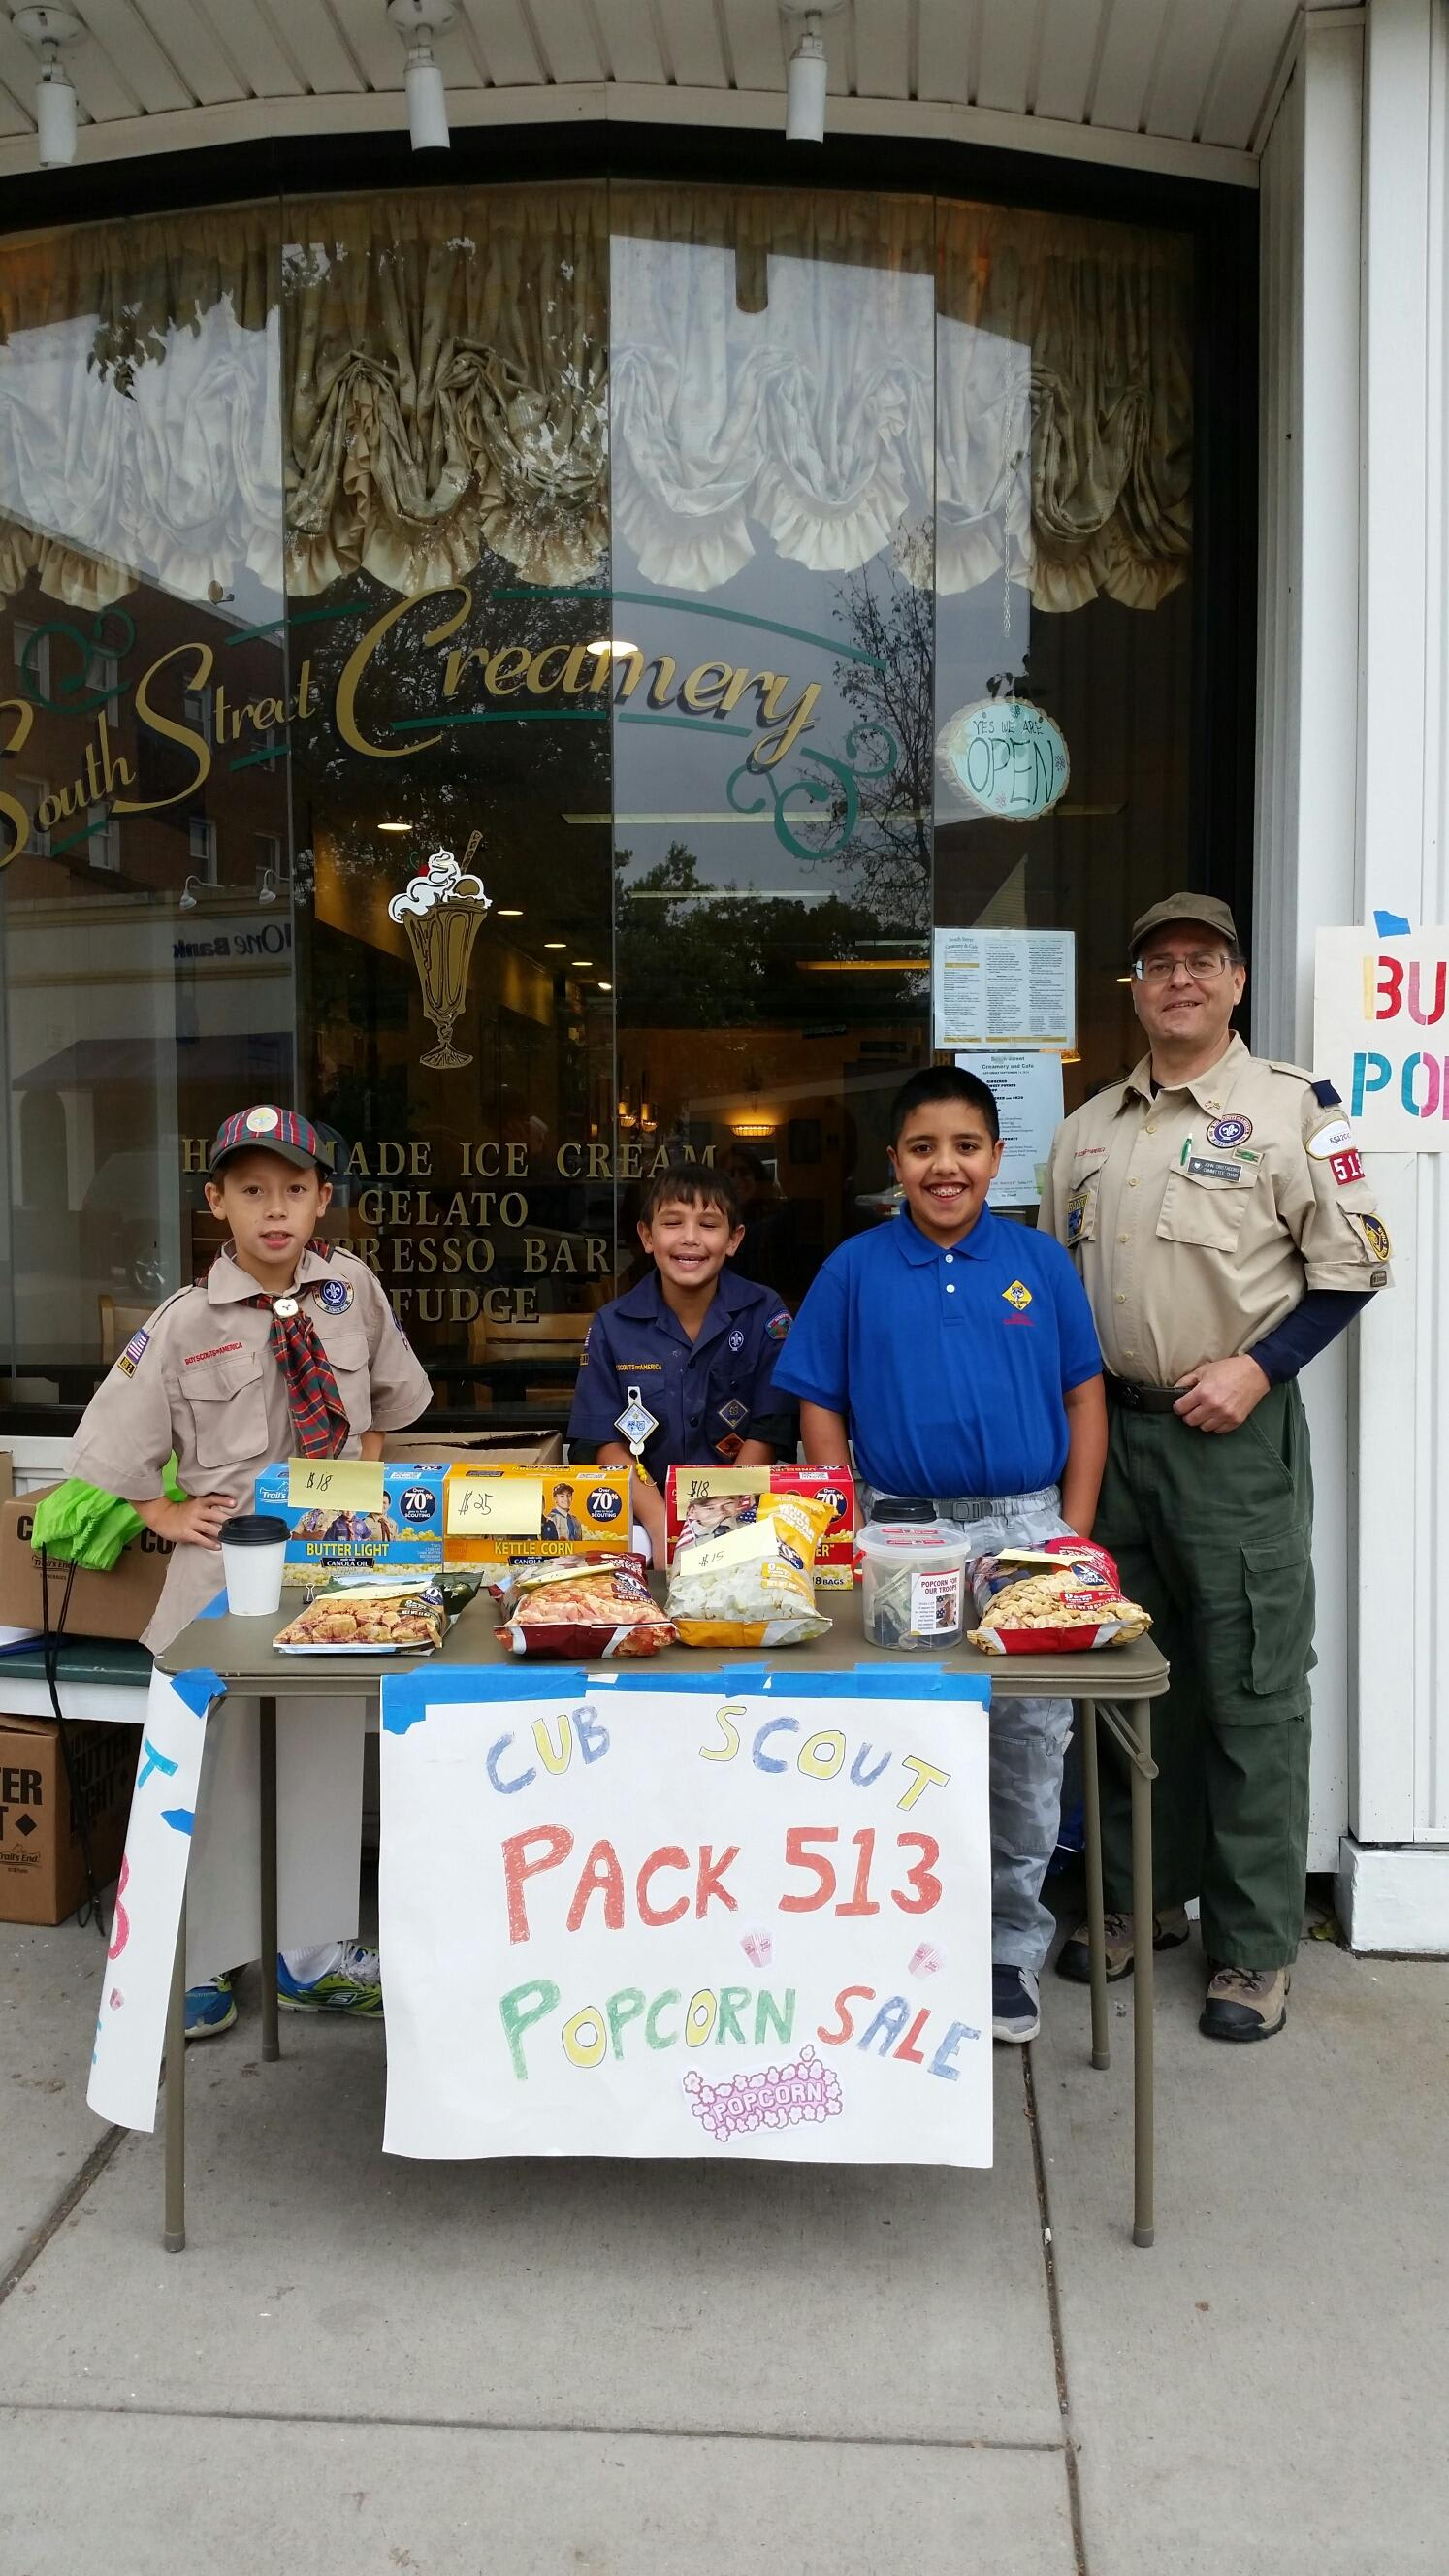 Boy Scouts at South Street Creamery Cafe